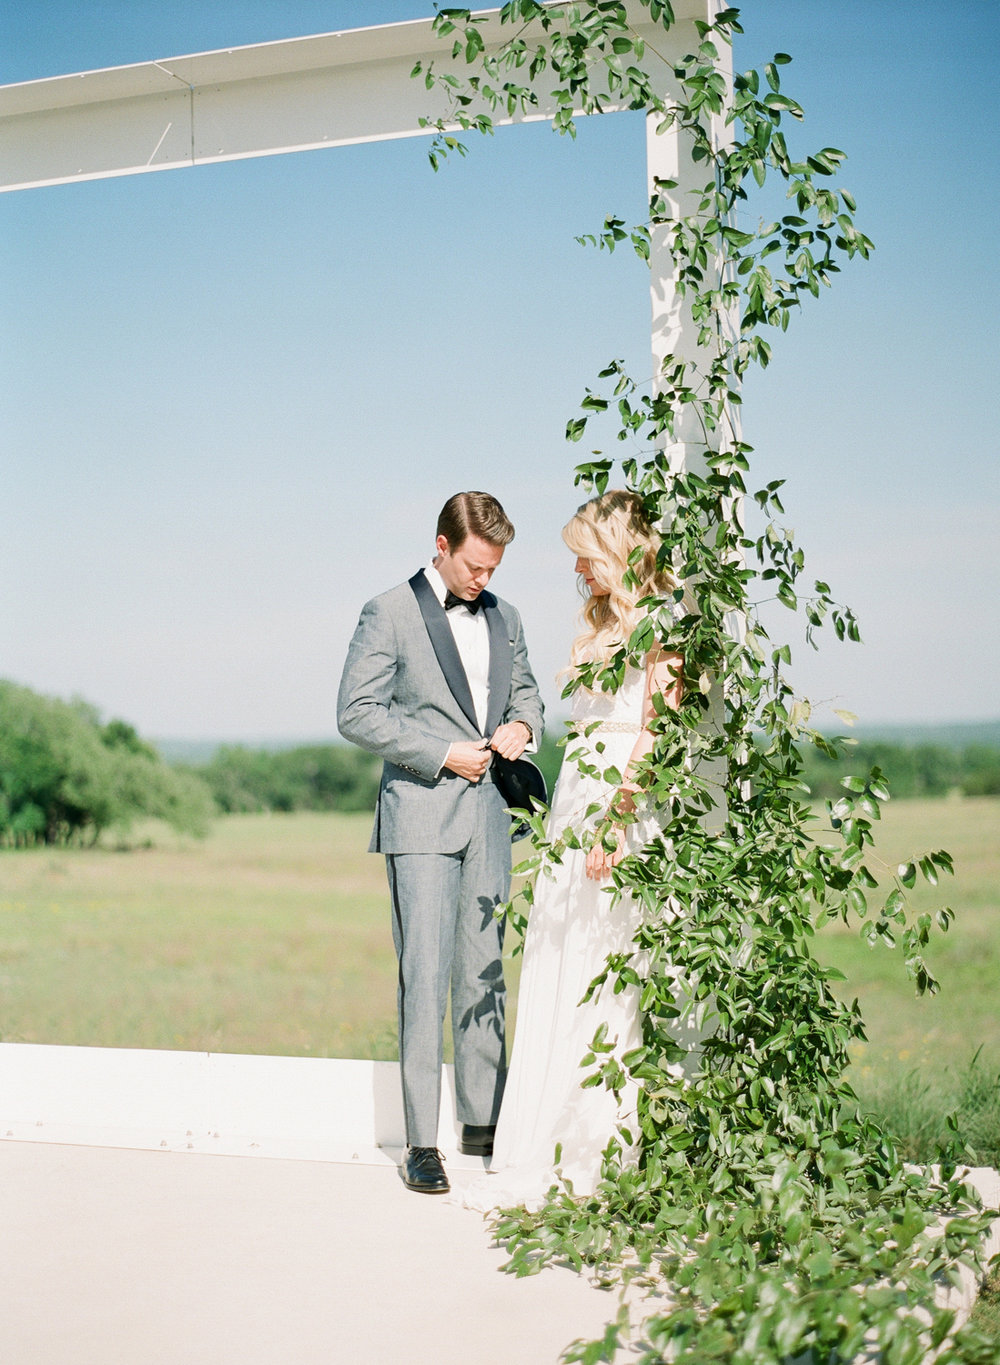 PROSPECT_HOUSE_WEDDING_AUSTIN_TX_BY_MATTHEW_MOORE_PHOTOGRAPHY_00114.jpg